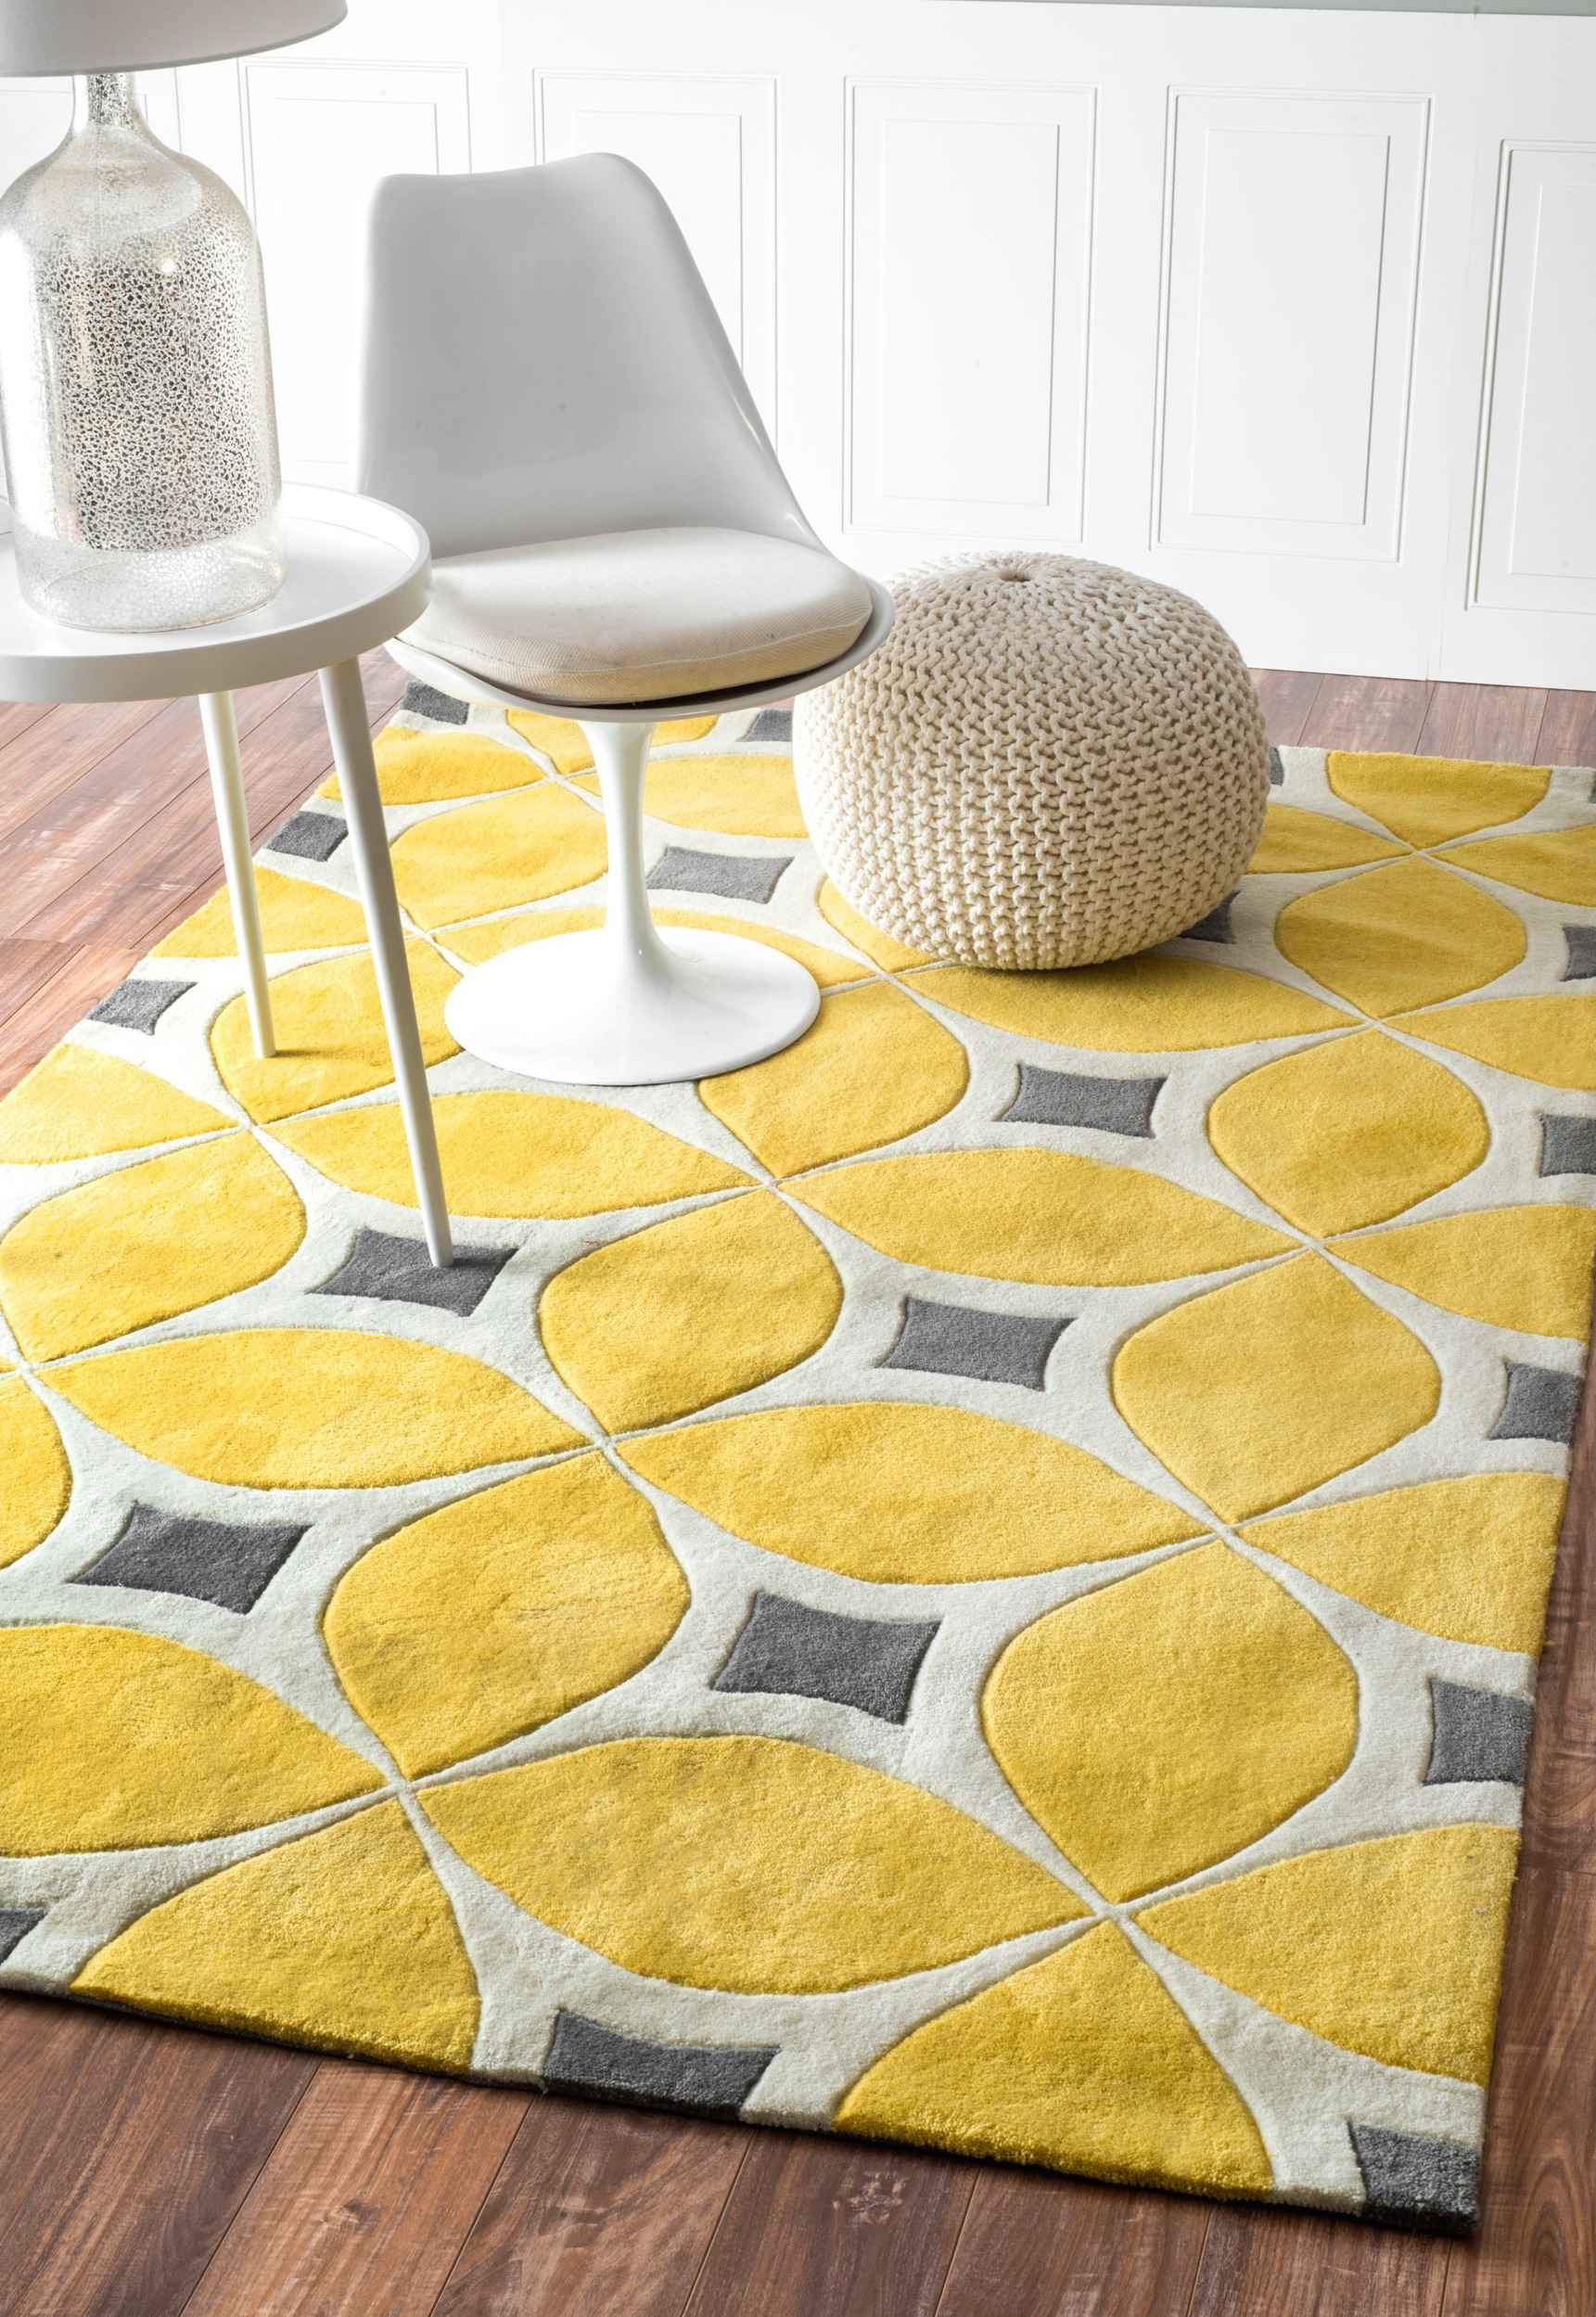 Yellow nuLOOM handmade modern disco rug from Overstock  25 Yellow Rug and Carpet Ideas to Brighten up Any Room Yellow nuLOOM handmade modern disco rug from Overstock1